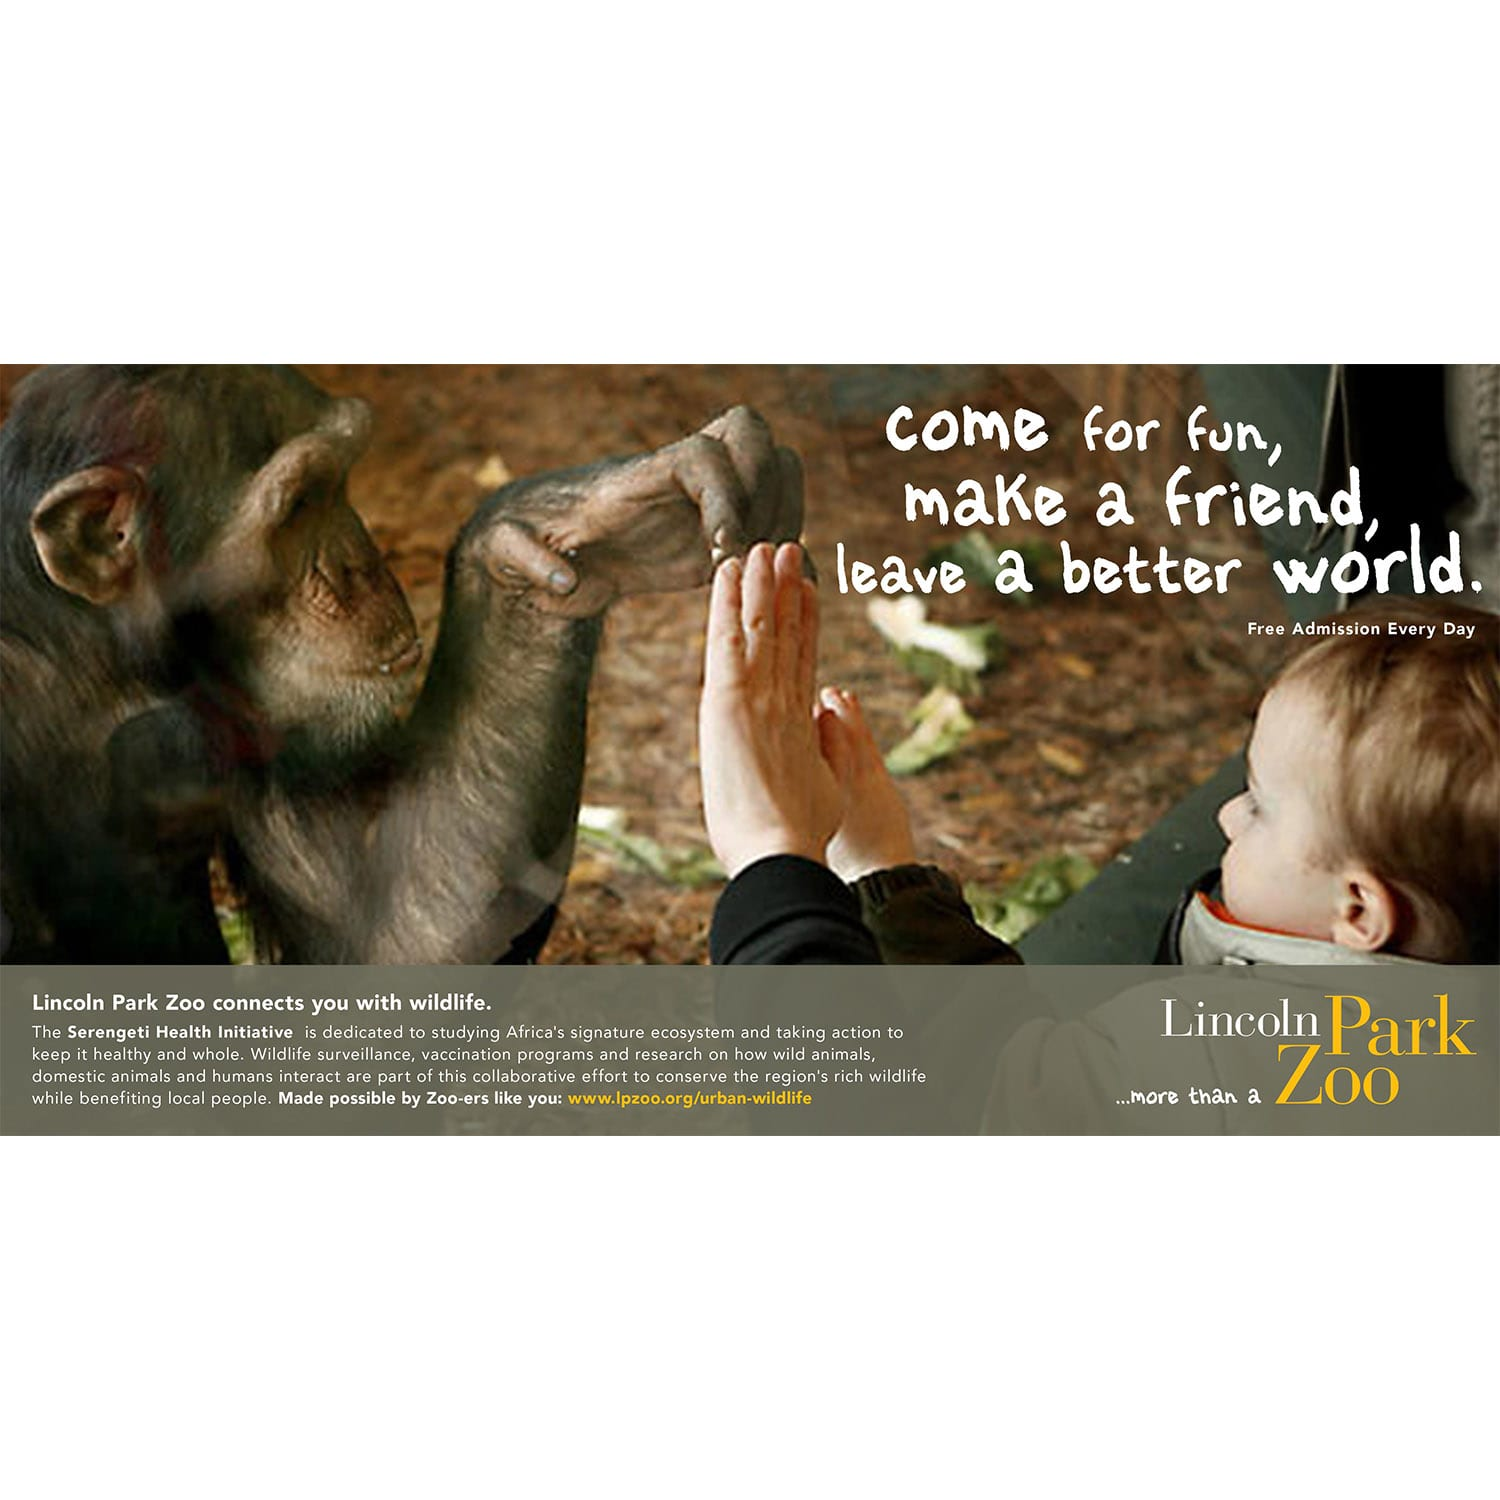 http://Lincoln%20Park%20Zoo